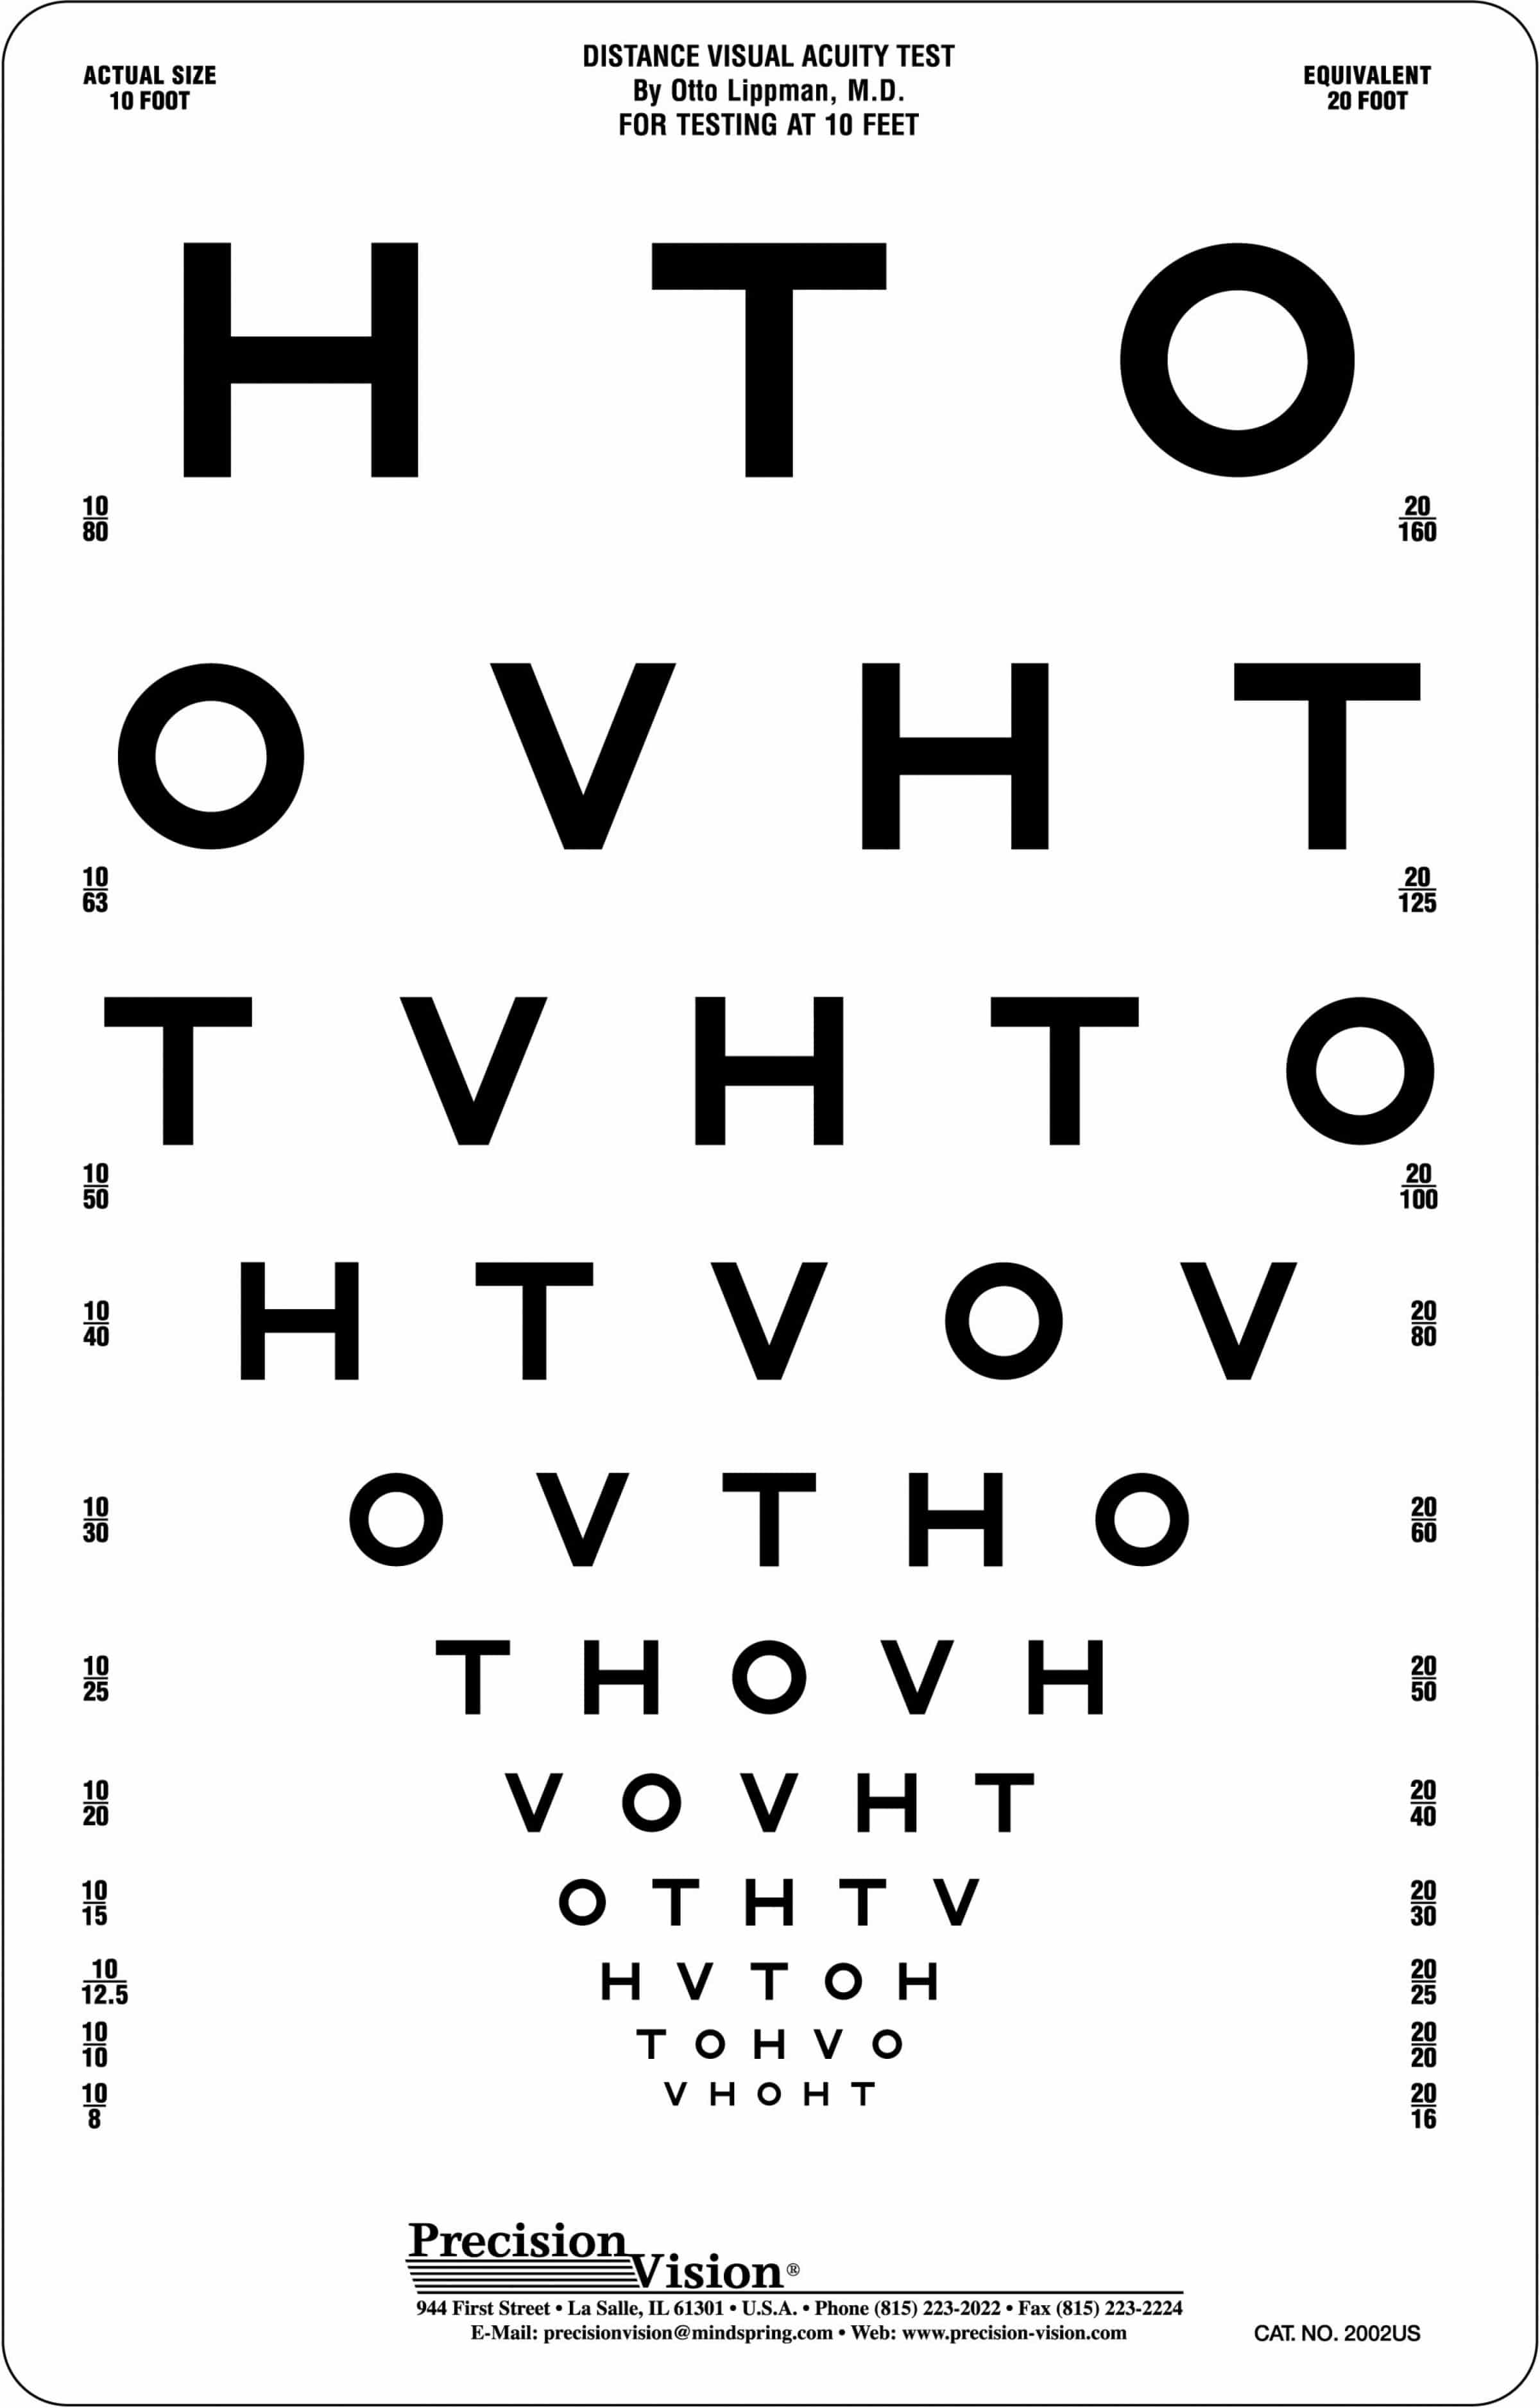 Hotv visual acuity chart 10ft precision vision